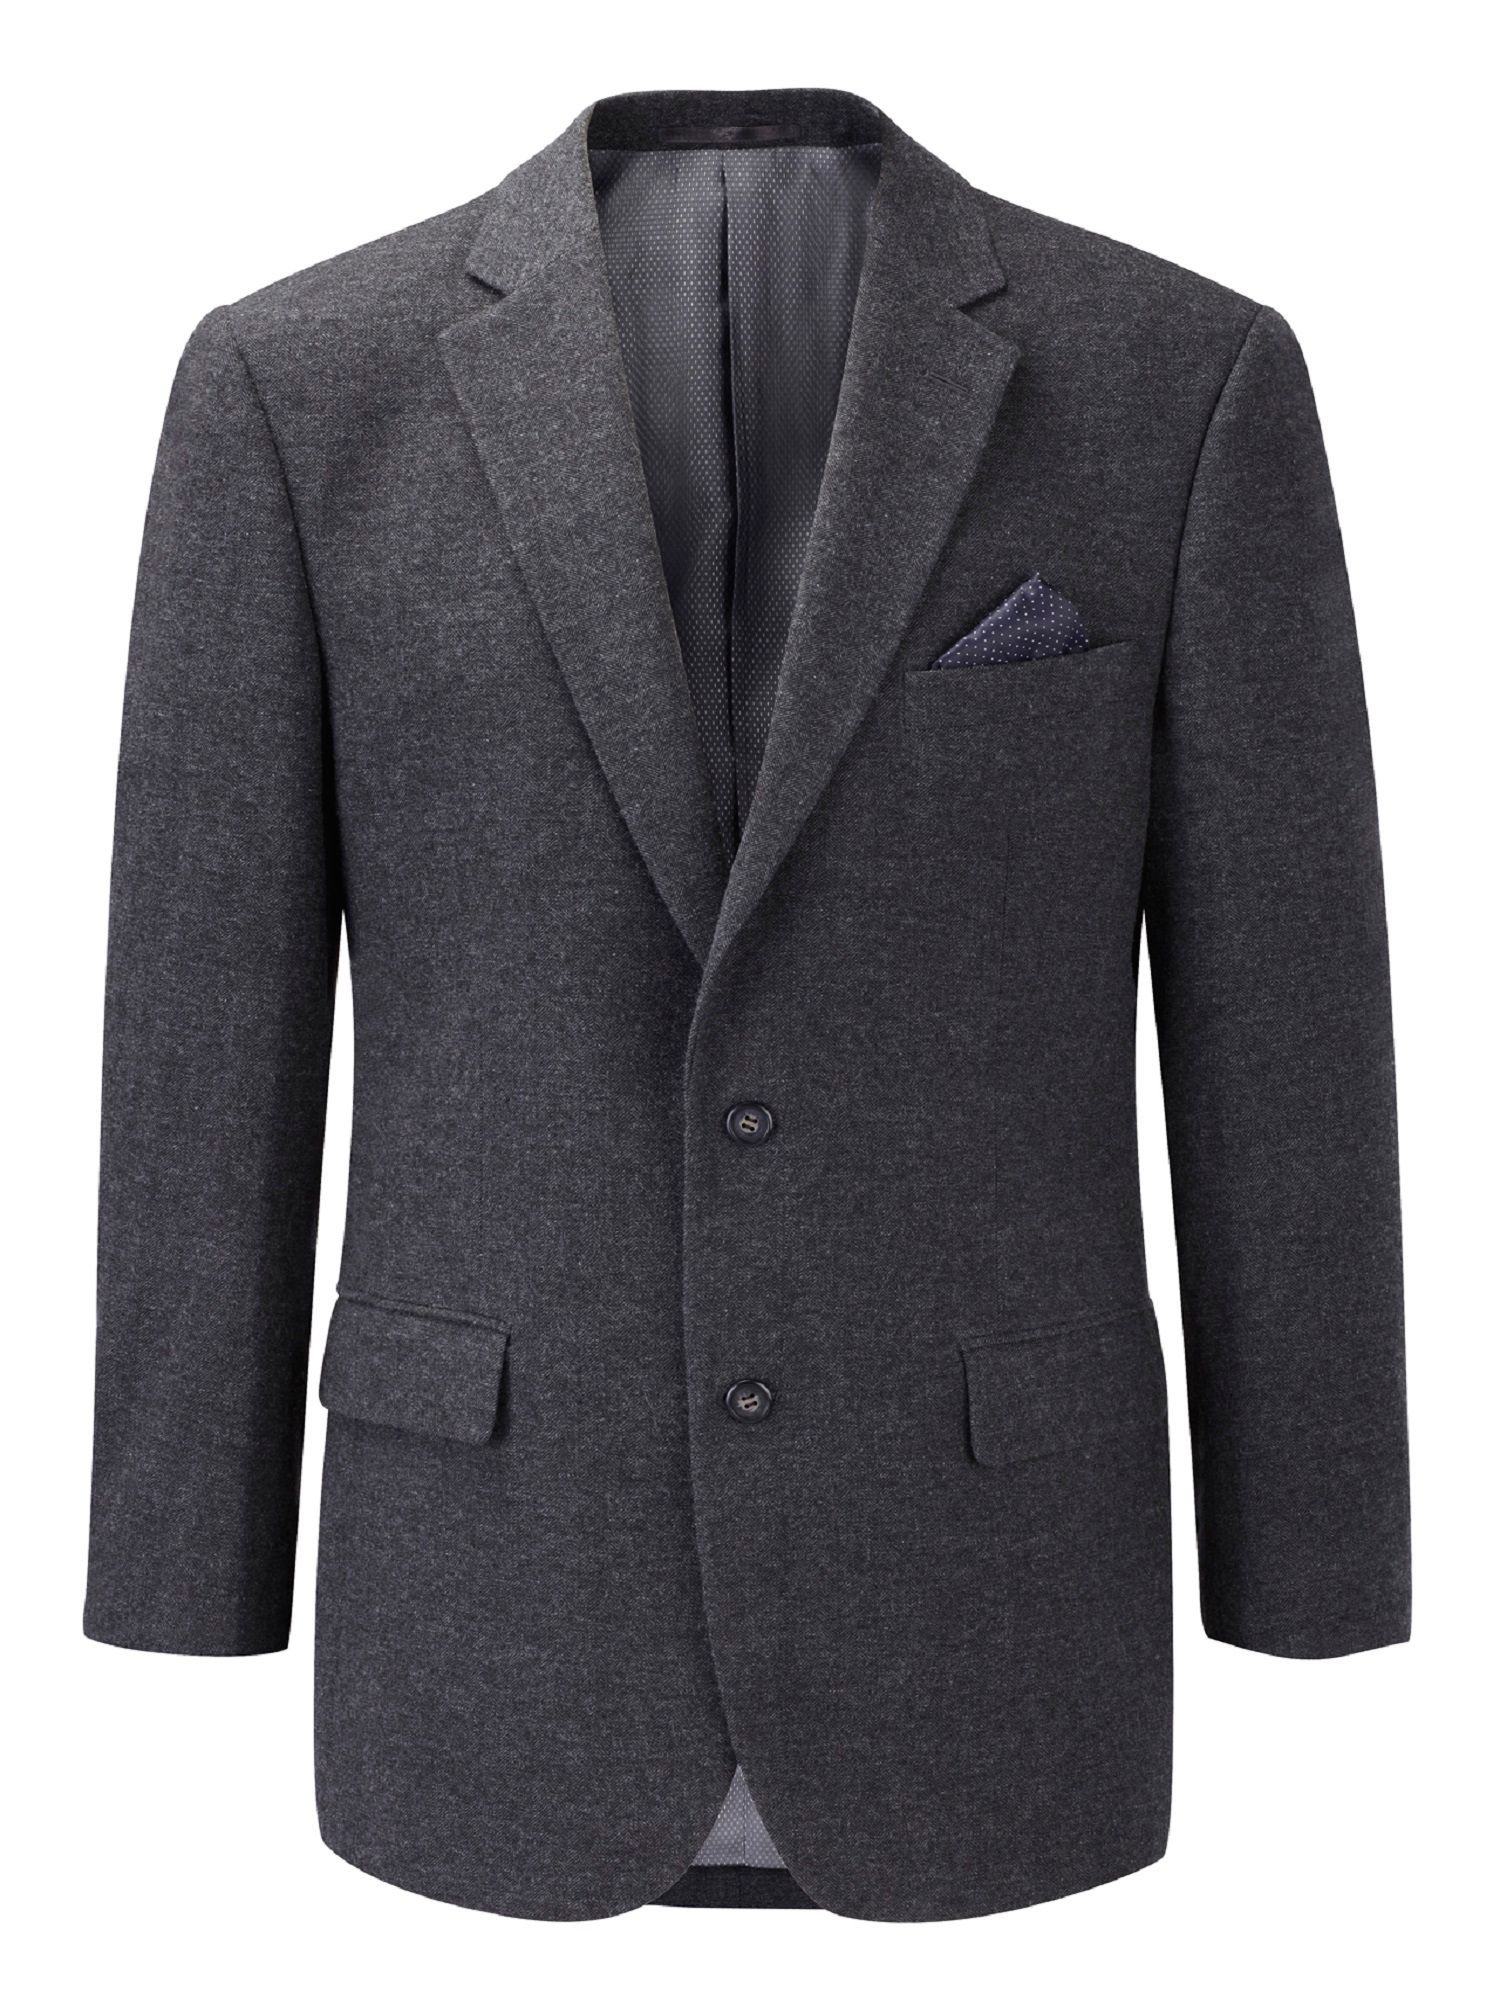 Buckden single breasted jacket